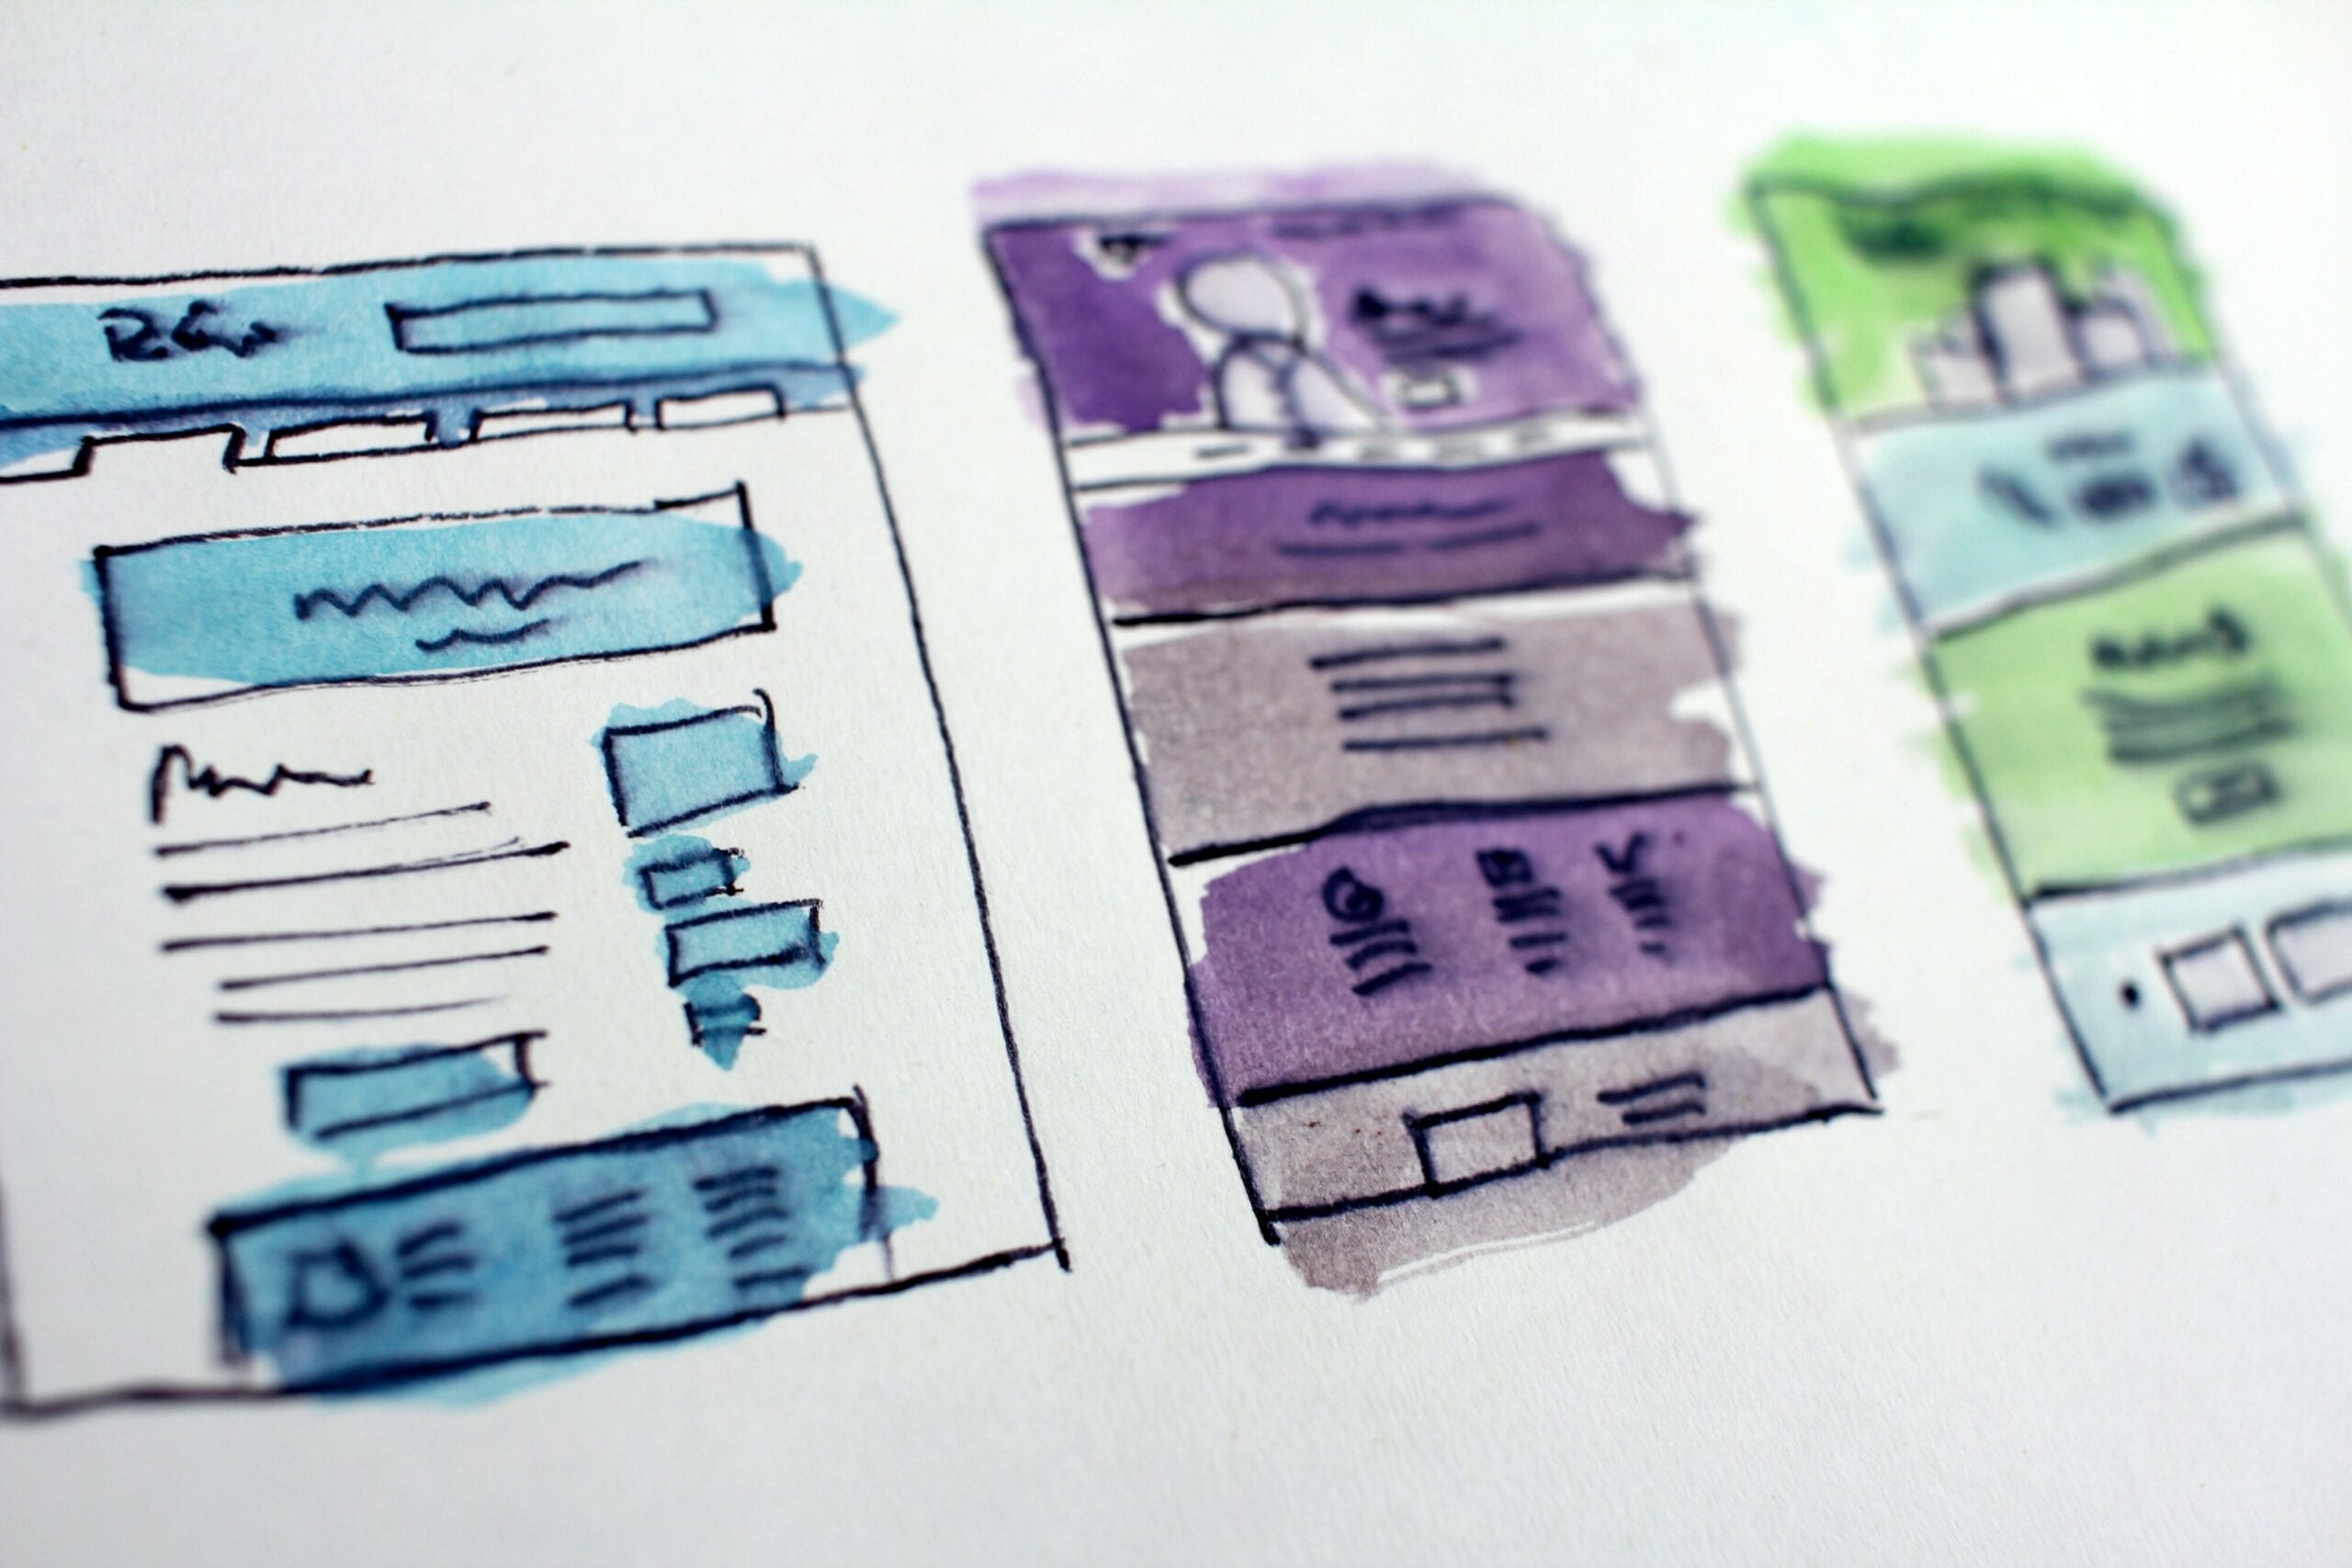 Drawings of website layouts on paper.